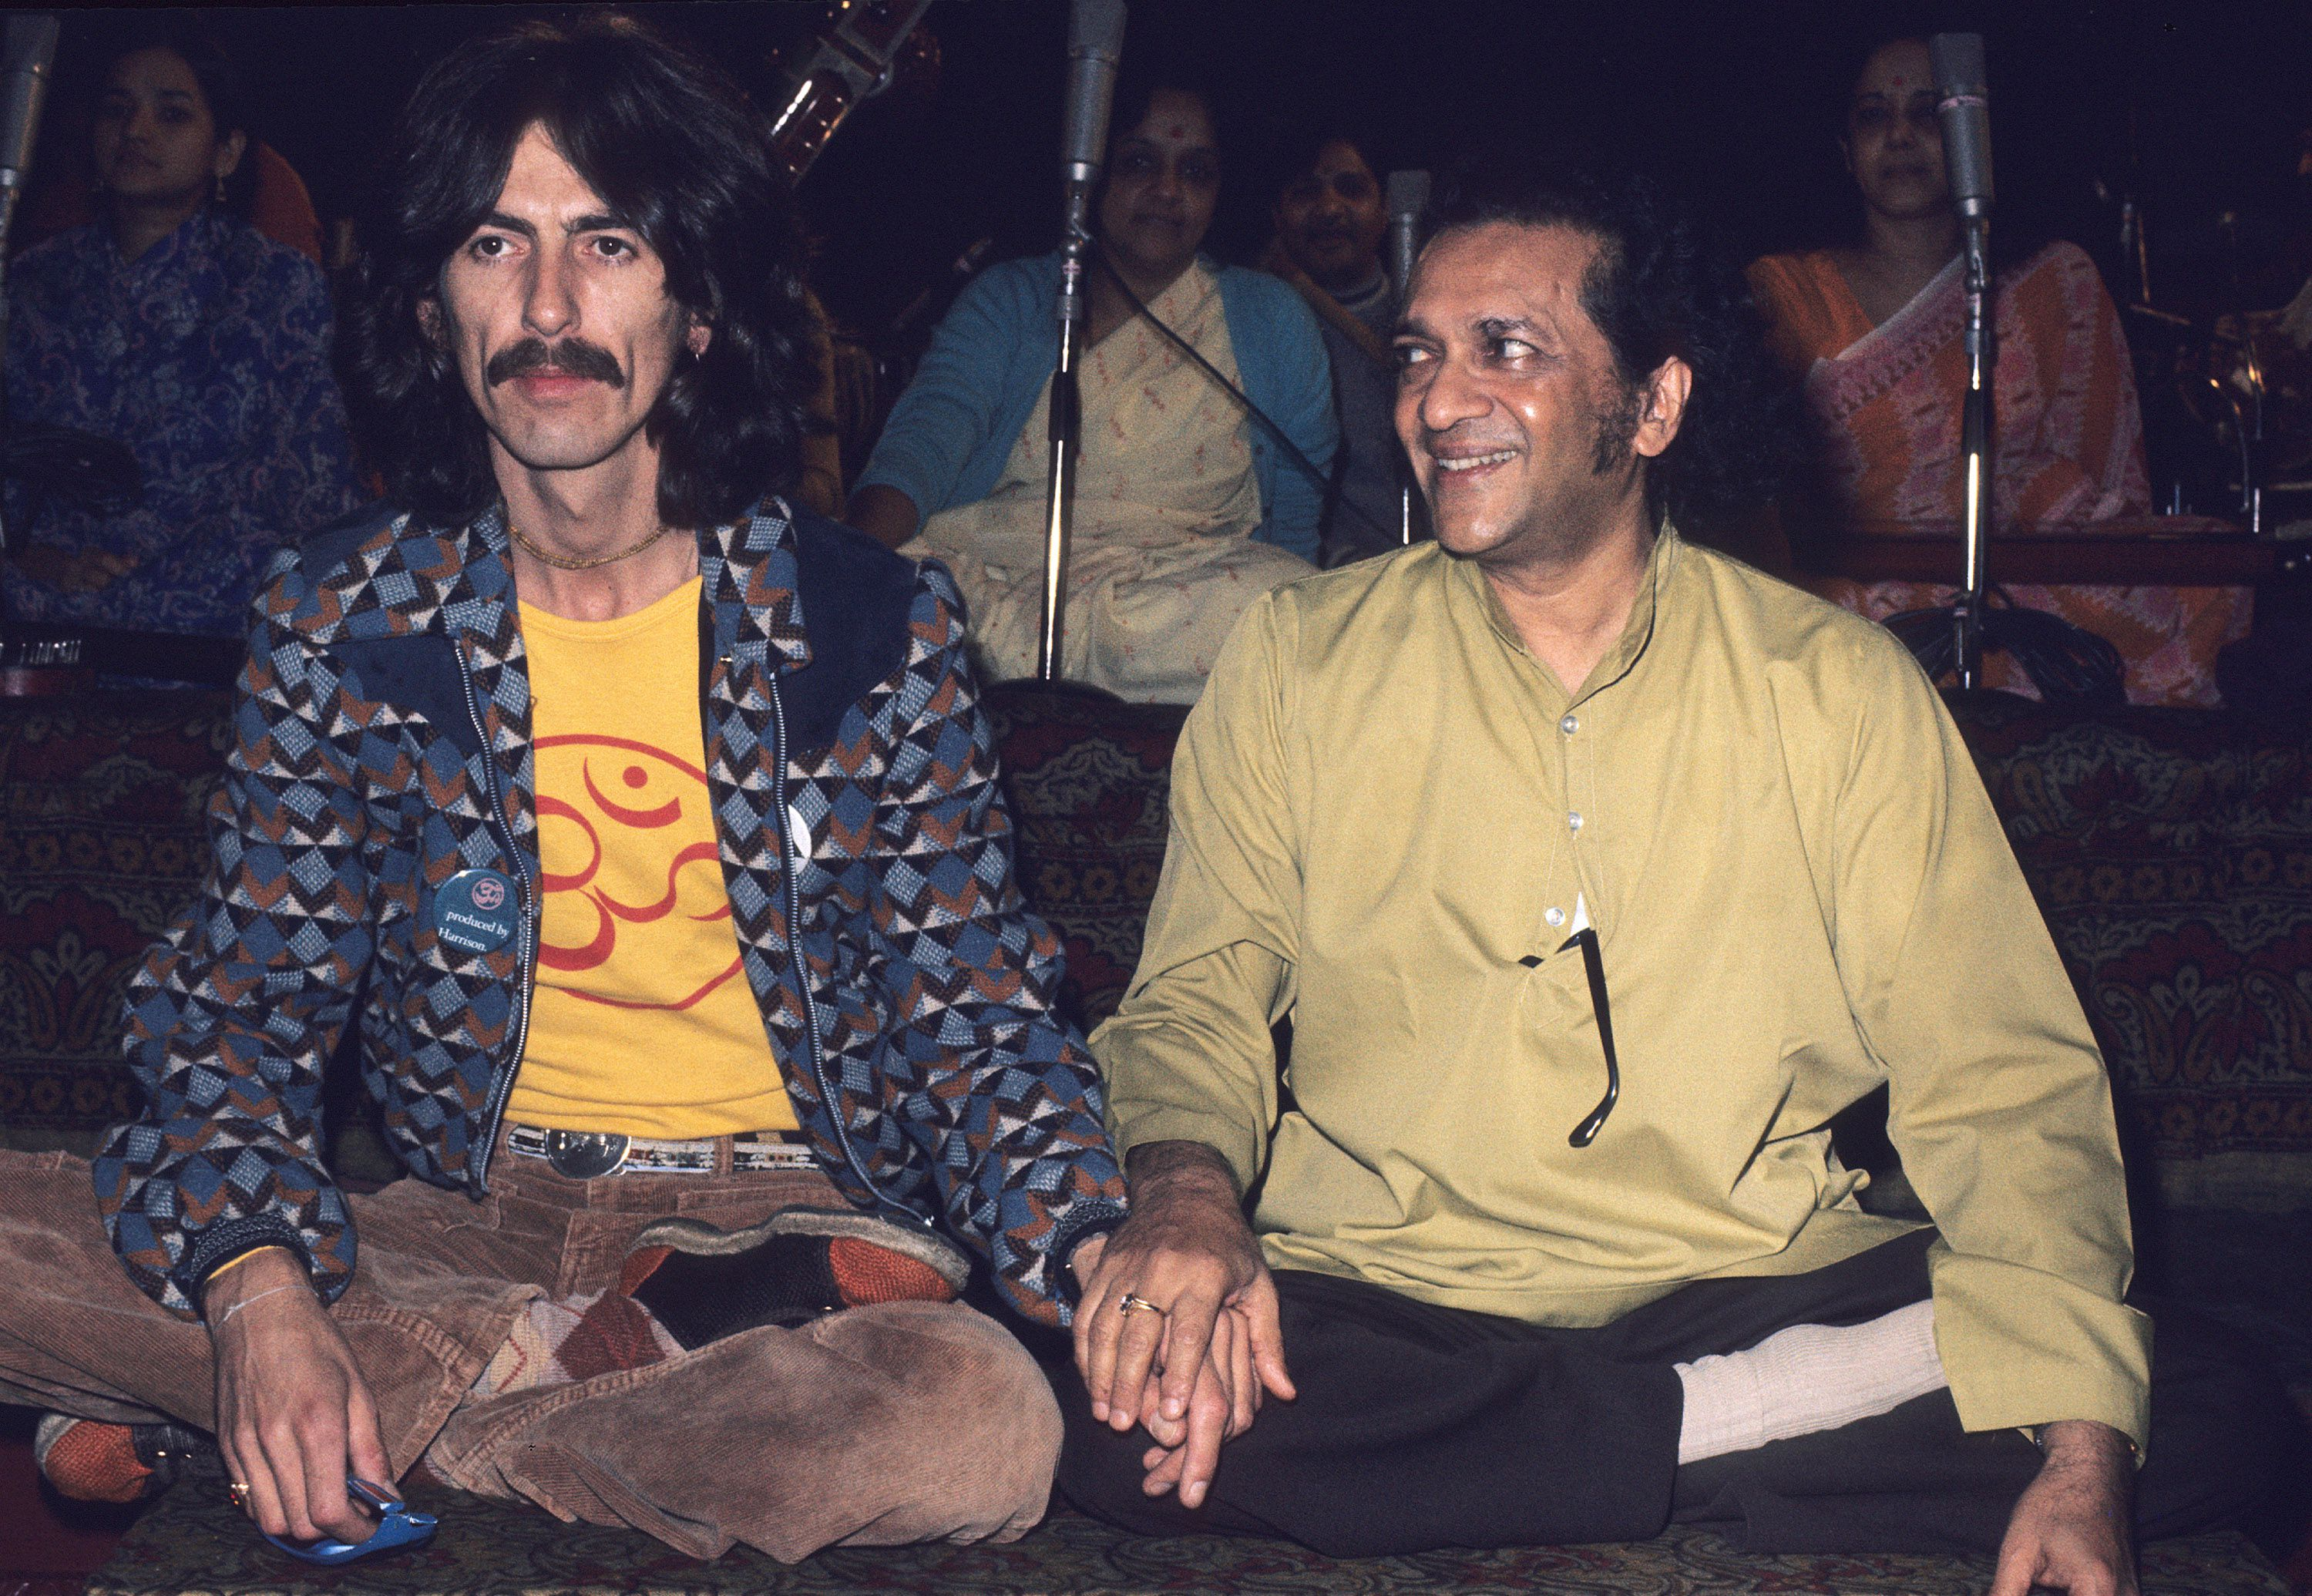 hindu singles in harrison Dark horse records released its first two singles  produced and arranged by harrison  song to the hindu god krishna the other single to come out that.